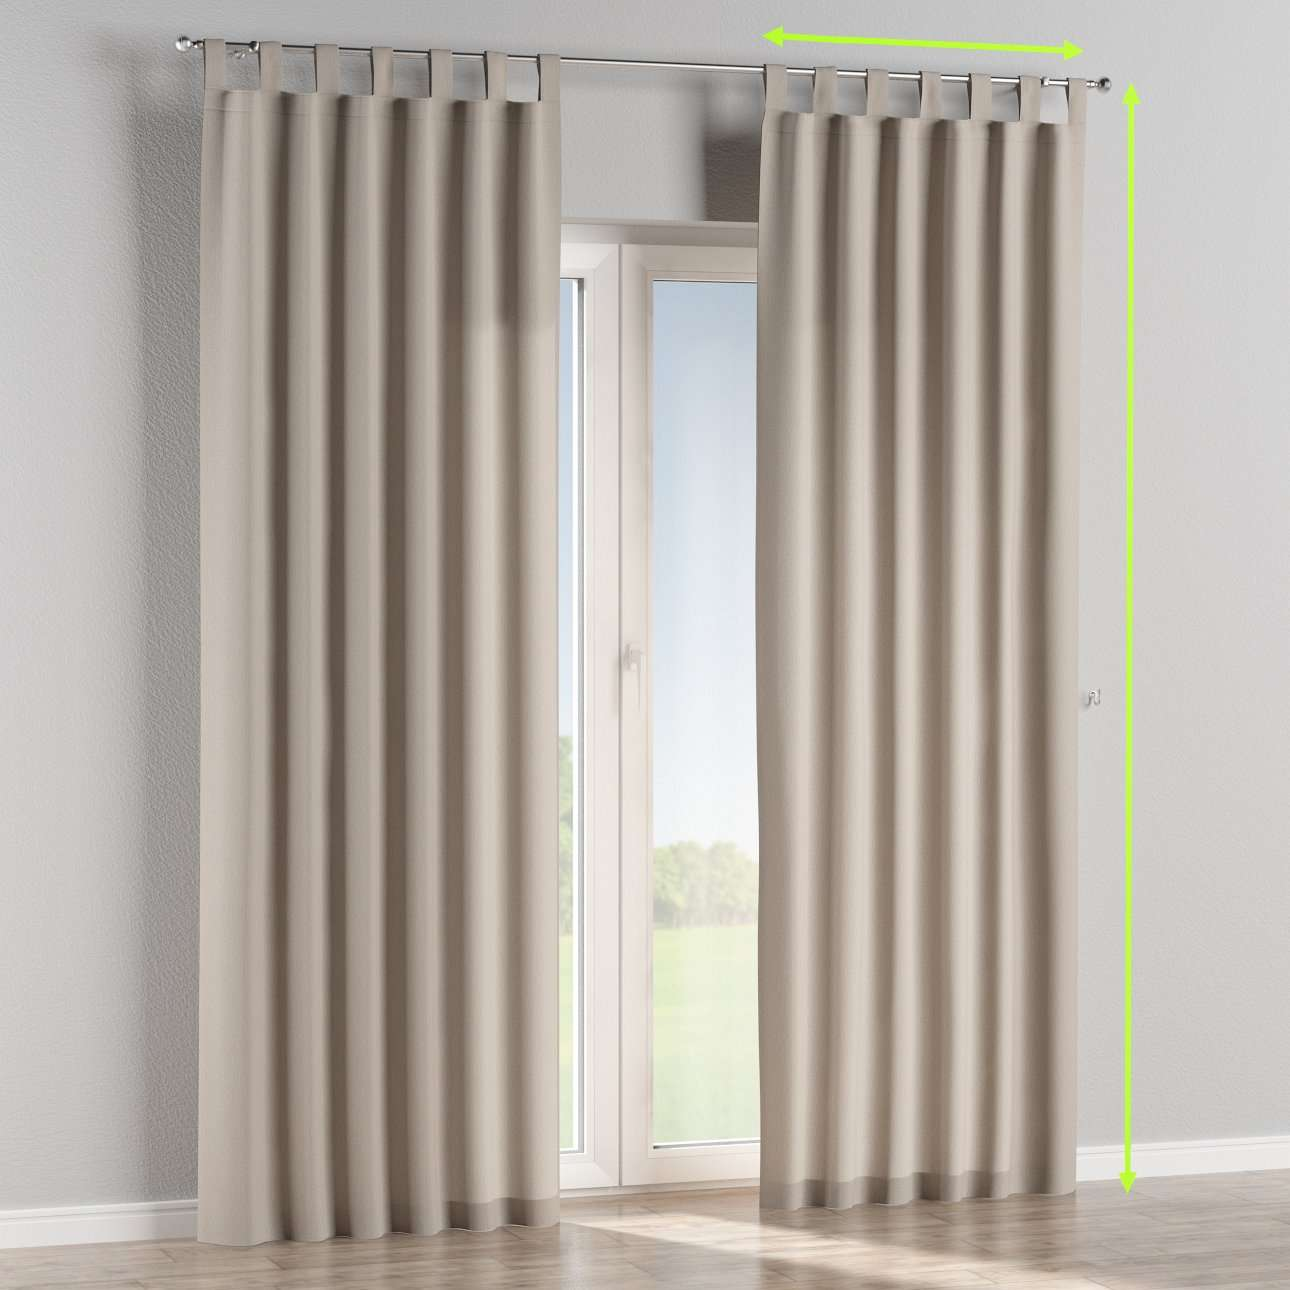 Tab top lined curtains in collection Chenille, fabric: 702-23